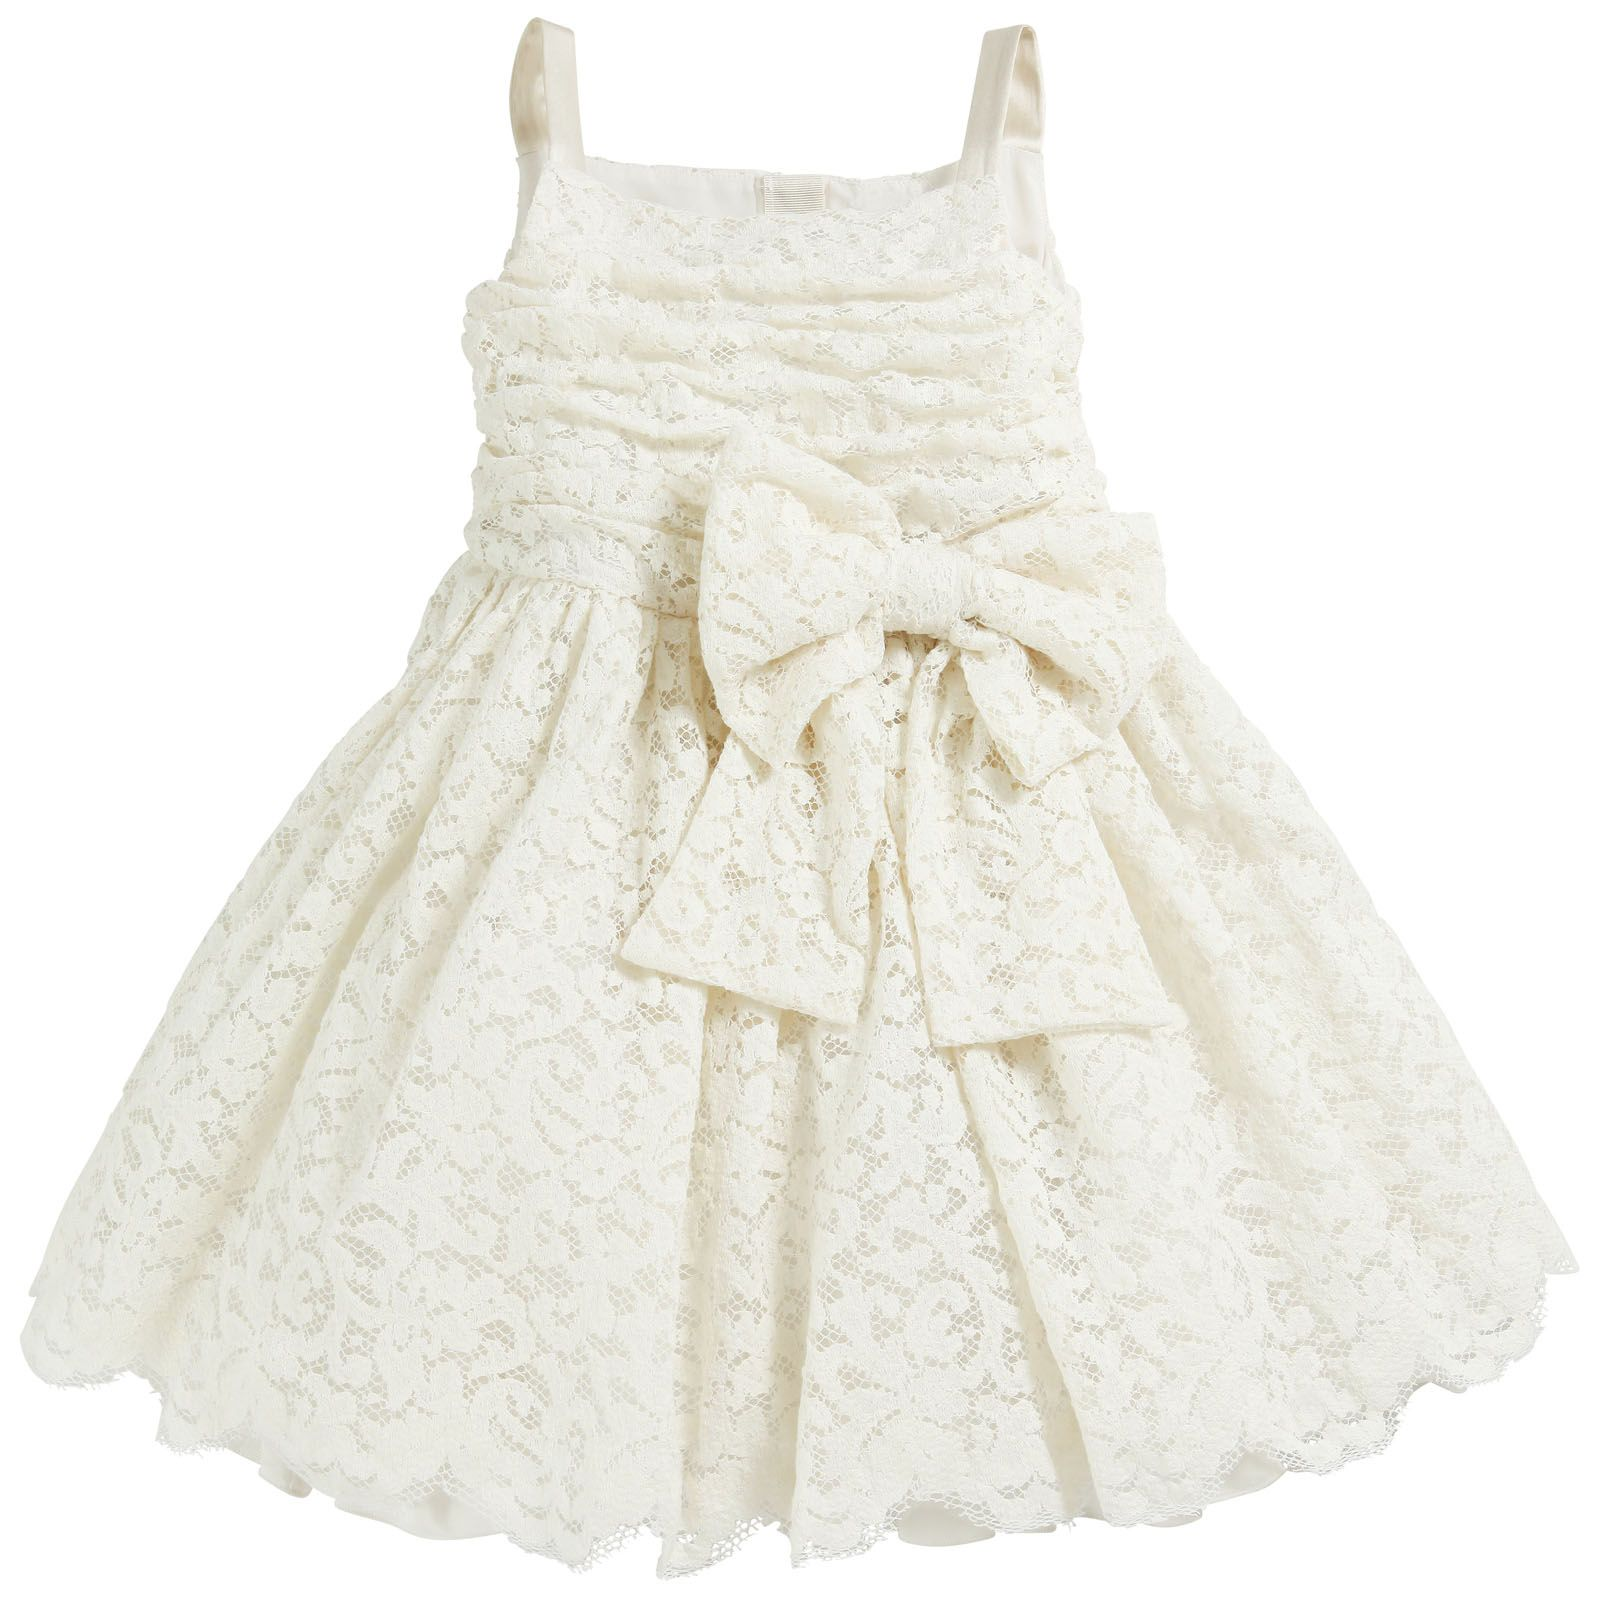 Beautiful dress made of lace and silk Silky lining Dolce and